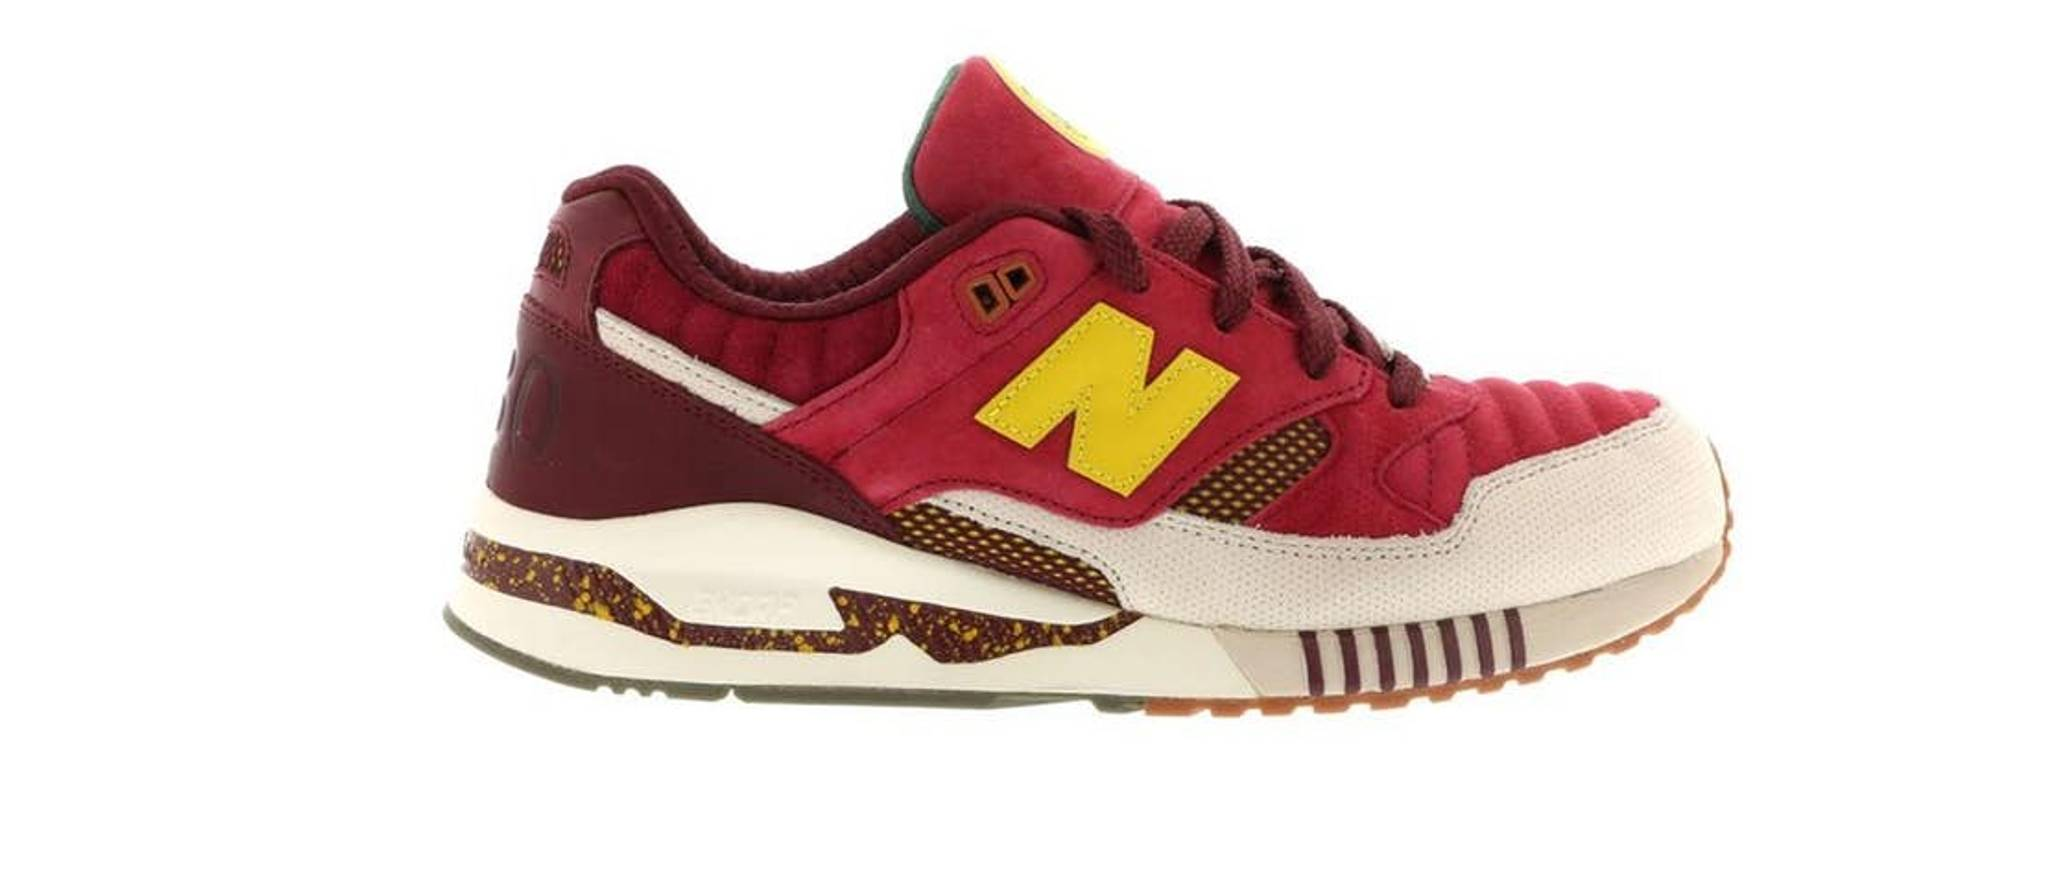 new balance 530 central park size 10 low top sneakers for sale